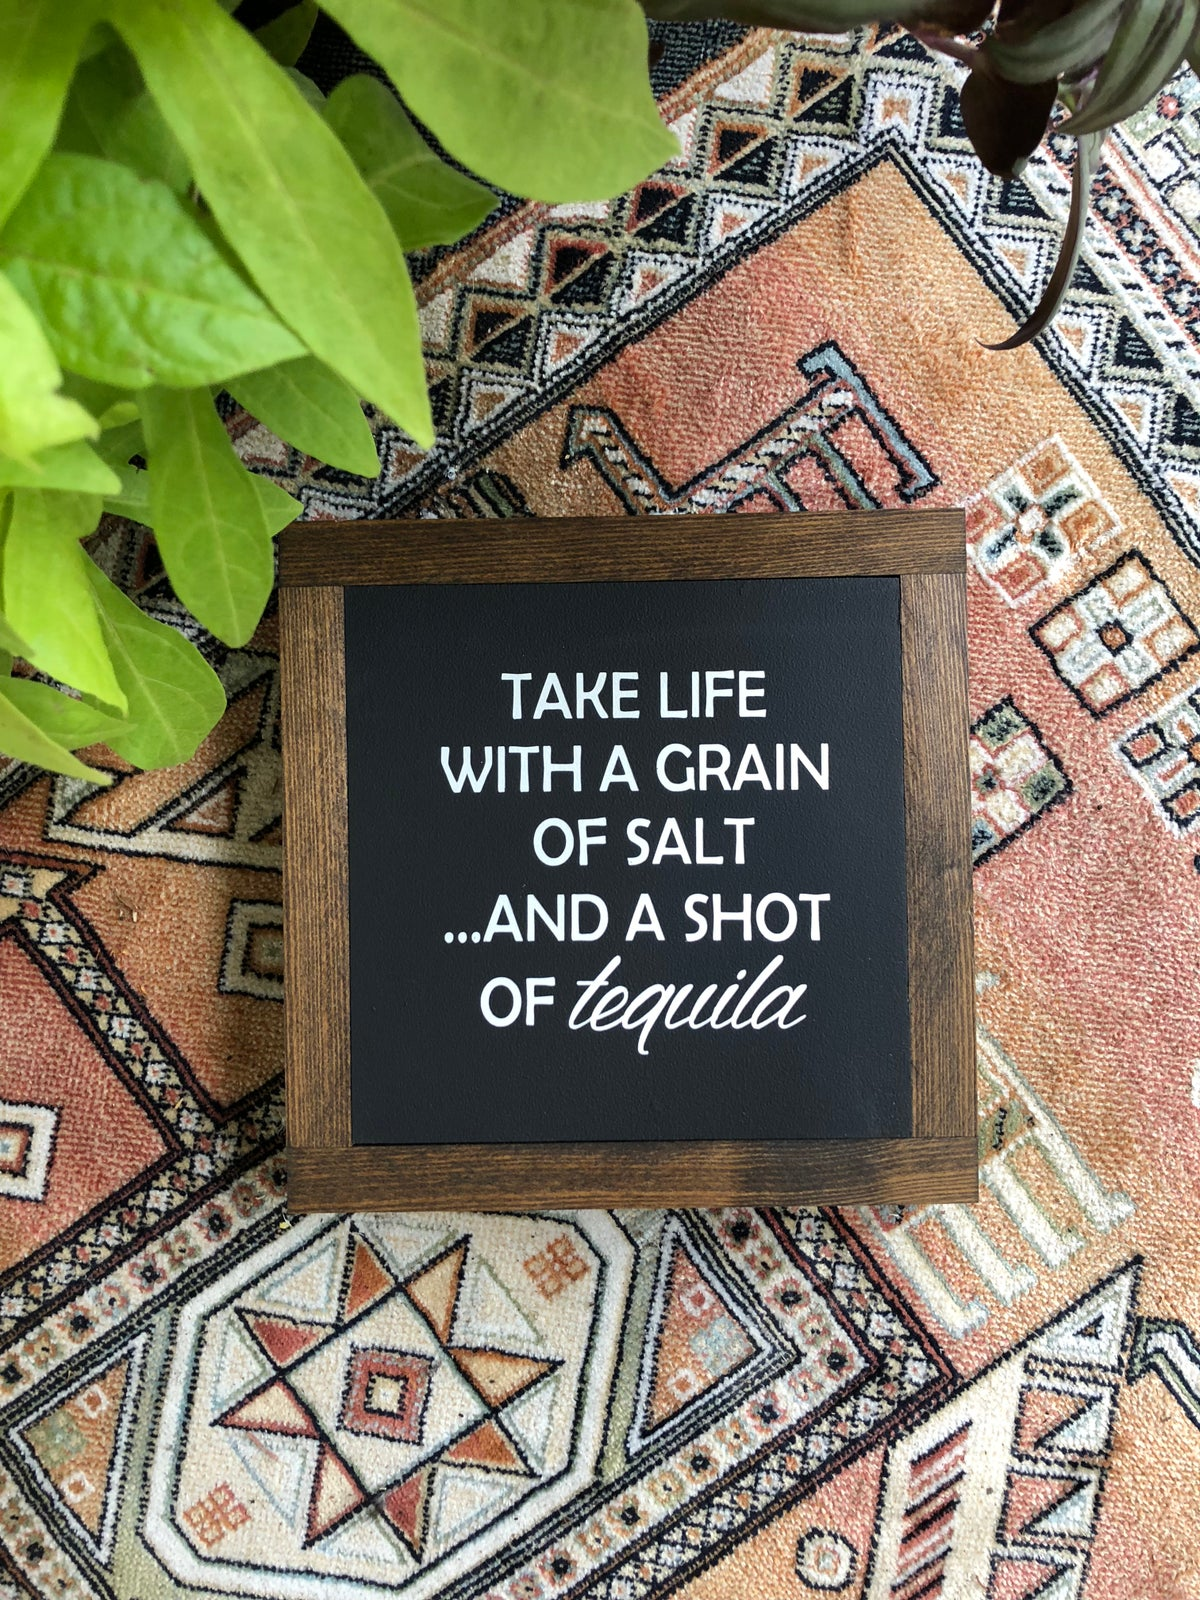 Image of Take life with a grain of salt